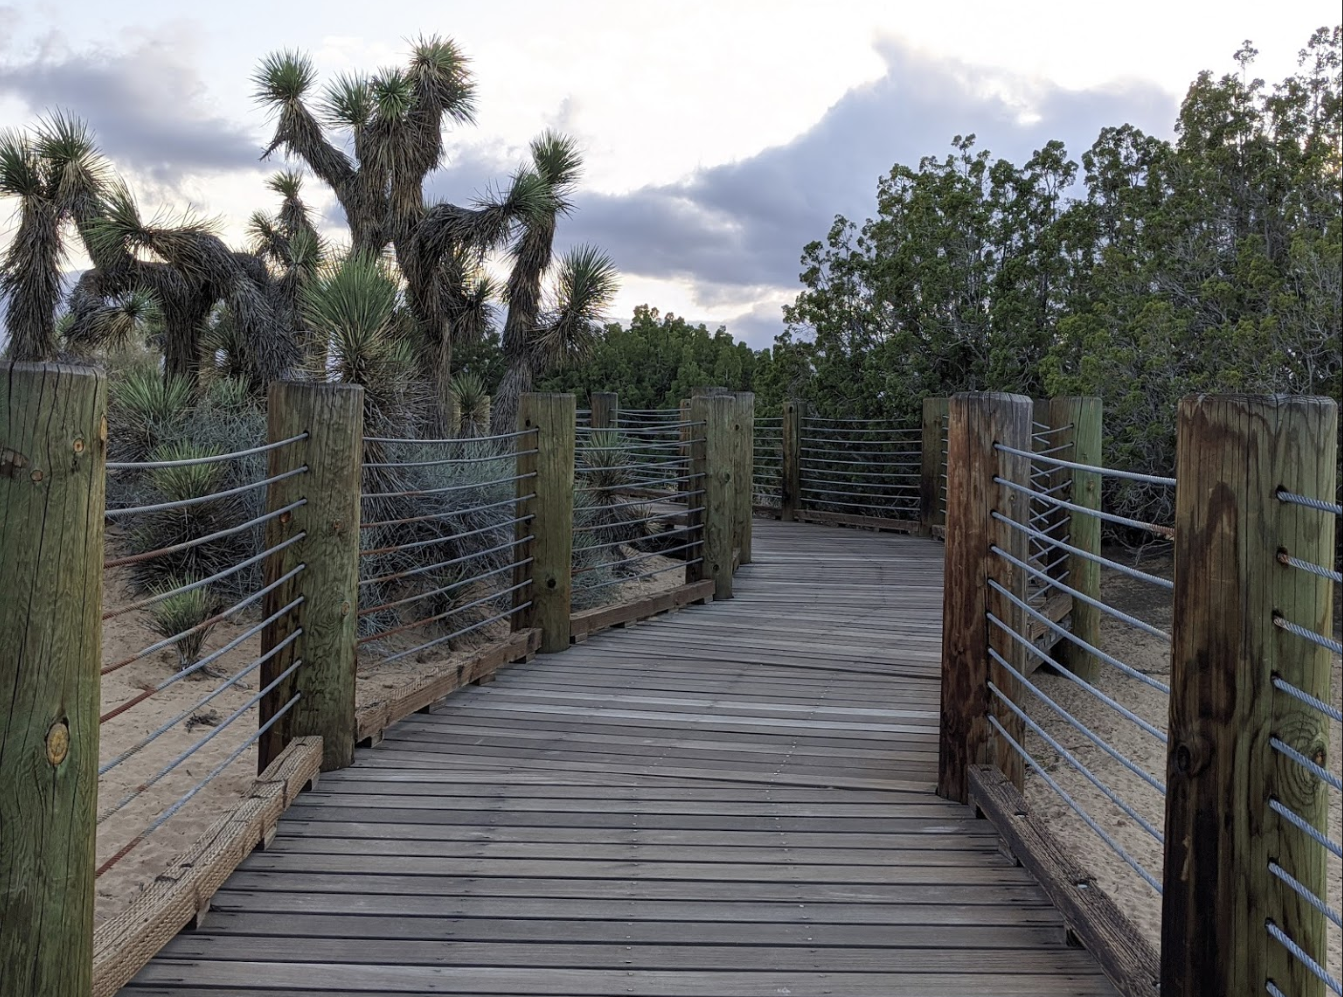 Prime Desert Woodland Preserve Is A Little-Known Southern California Destination With An Otherworldly Landscape